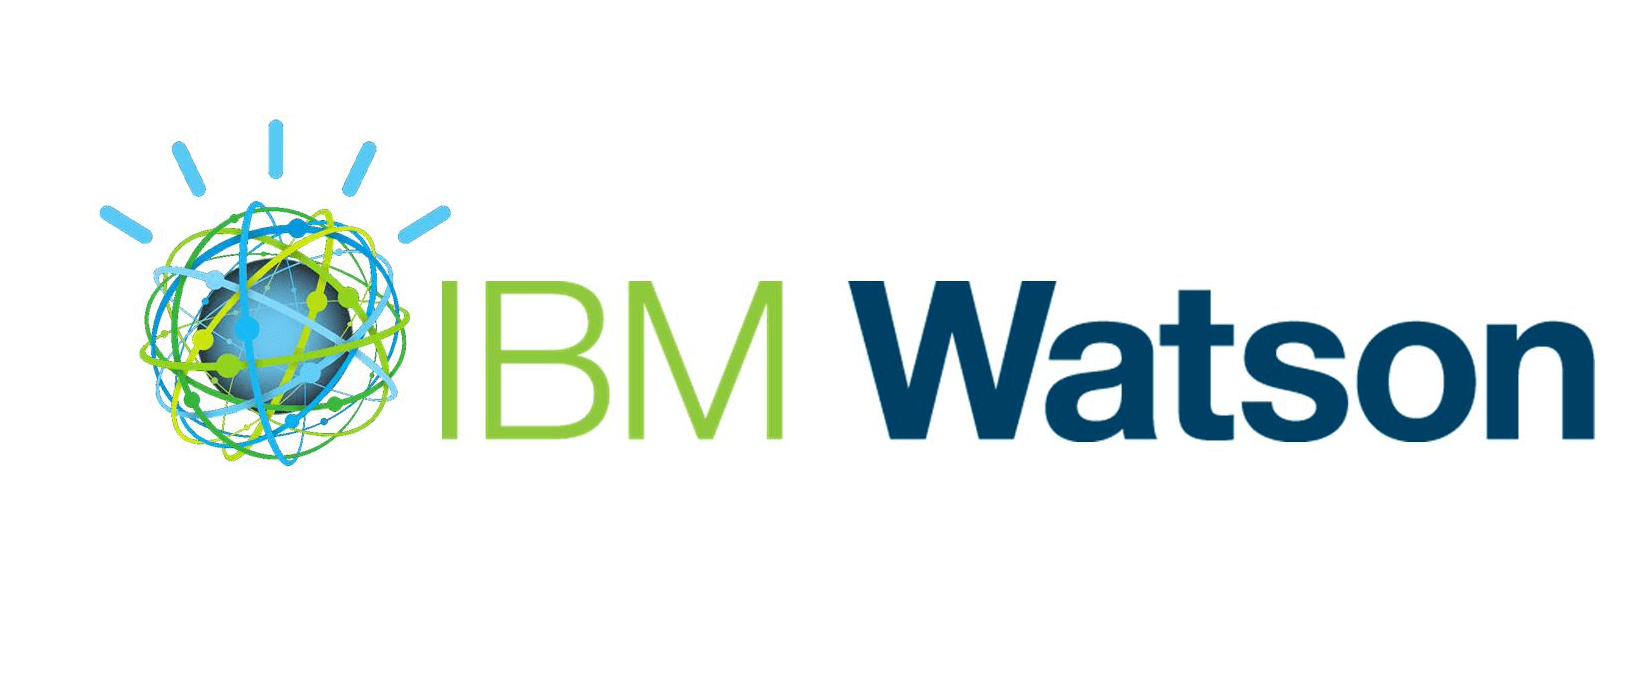 Watson is currently IBM's flagship AI project.